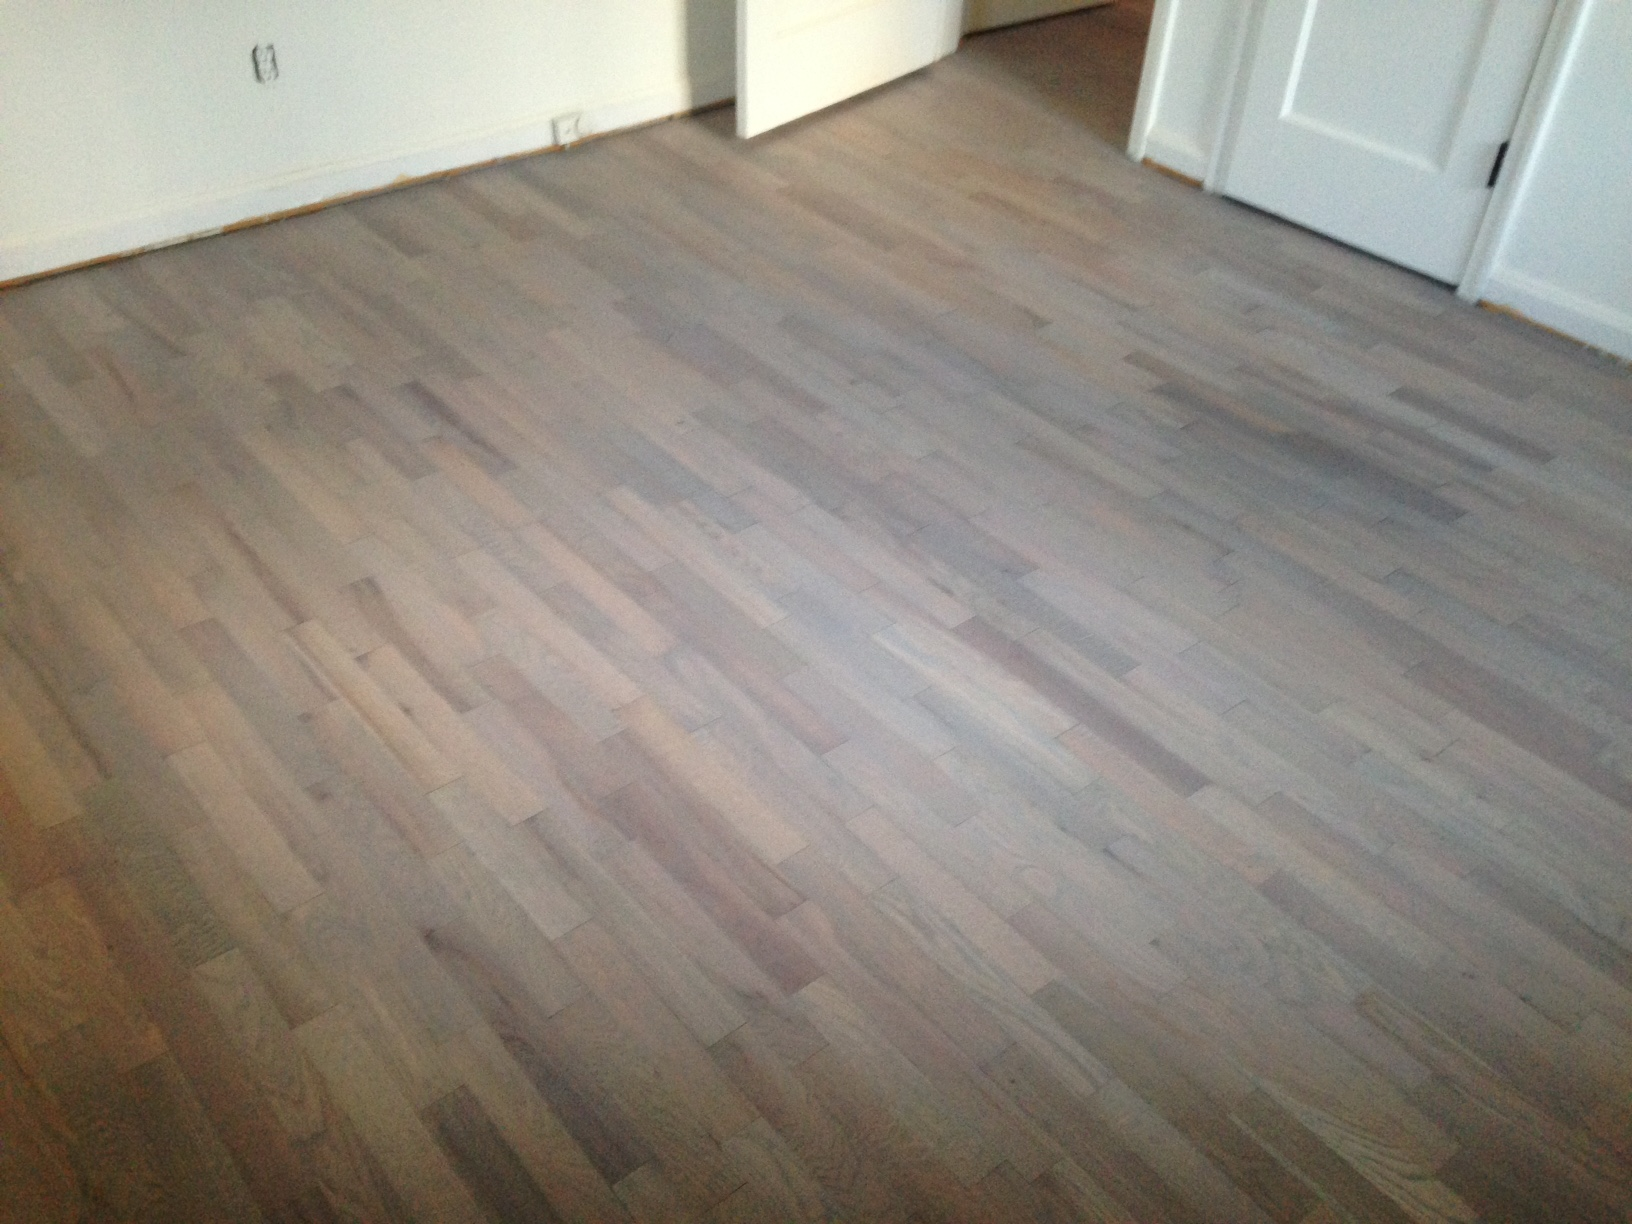 Refinishing wood floors for a beach house look dan 39 s for Where to get hardwood floors